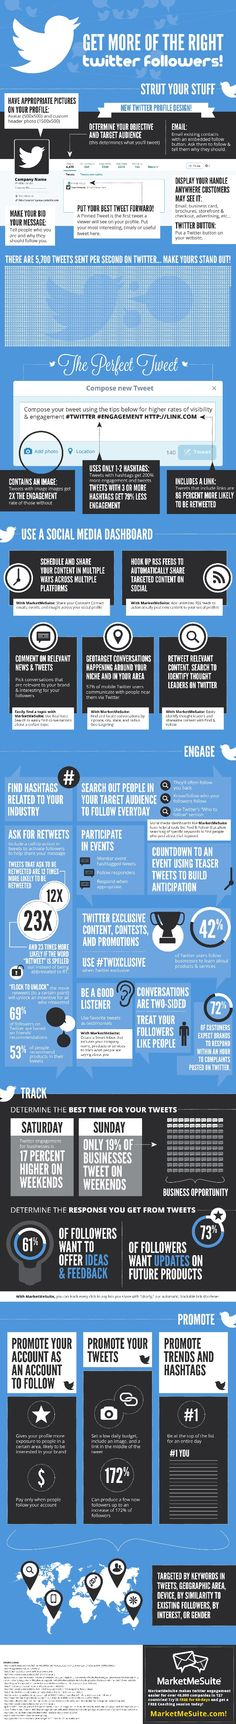 Get More of the Right Twitter Followers! #infographic